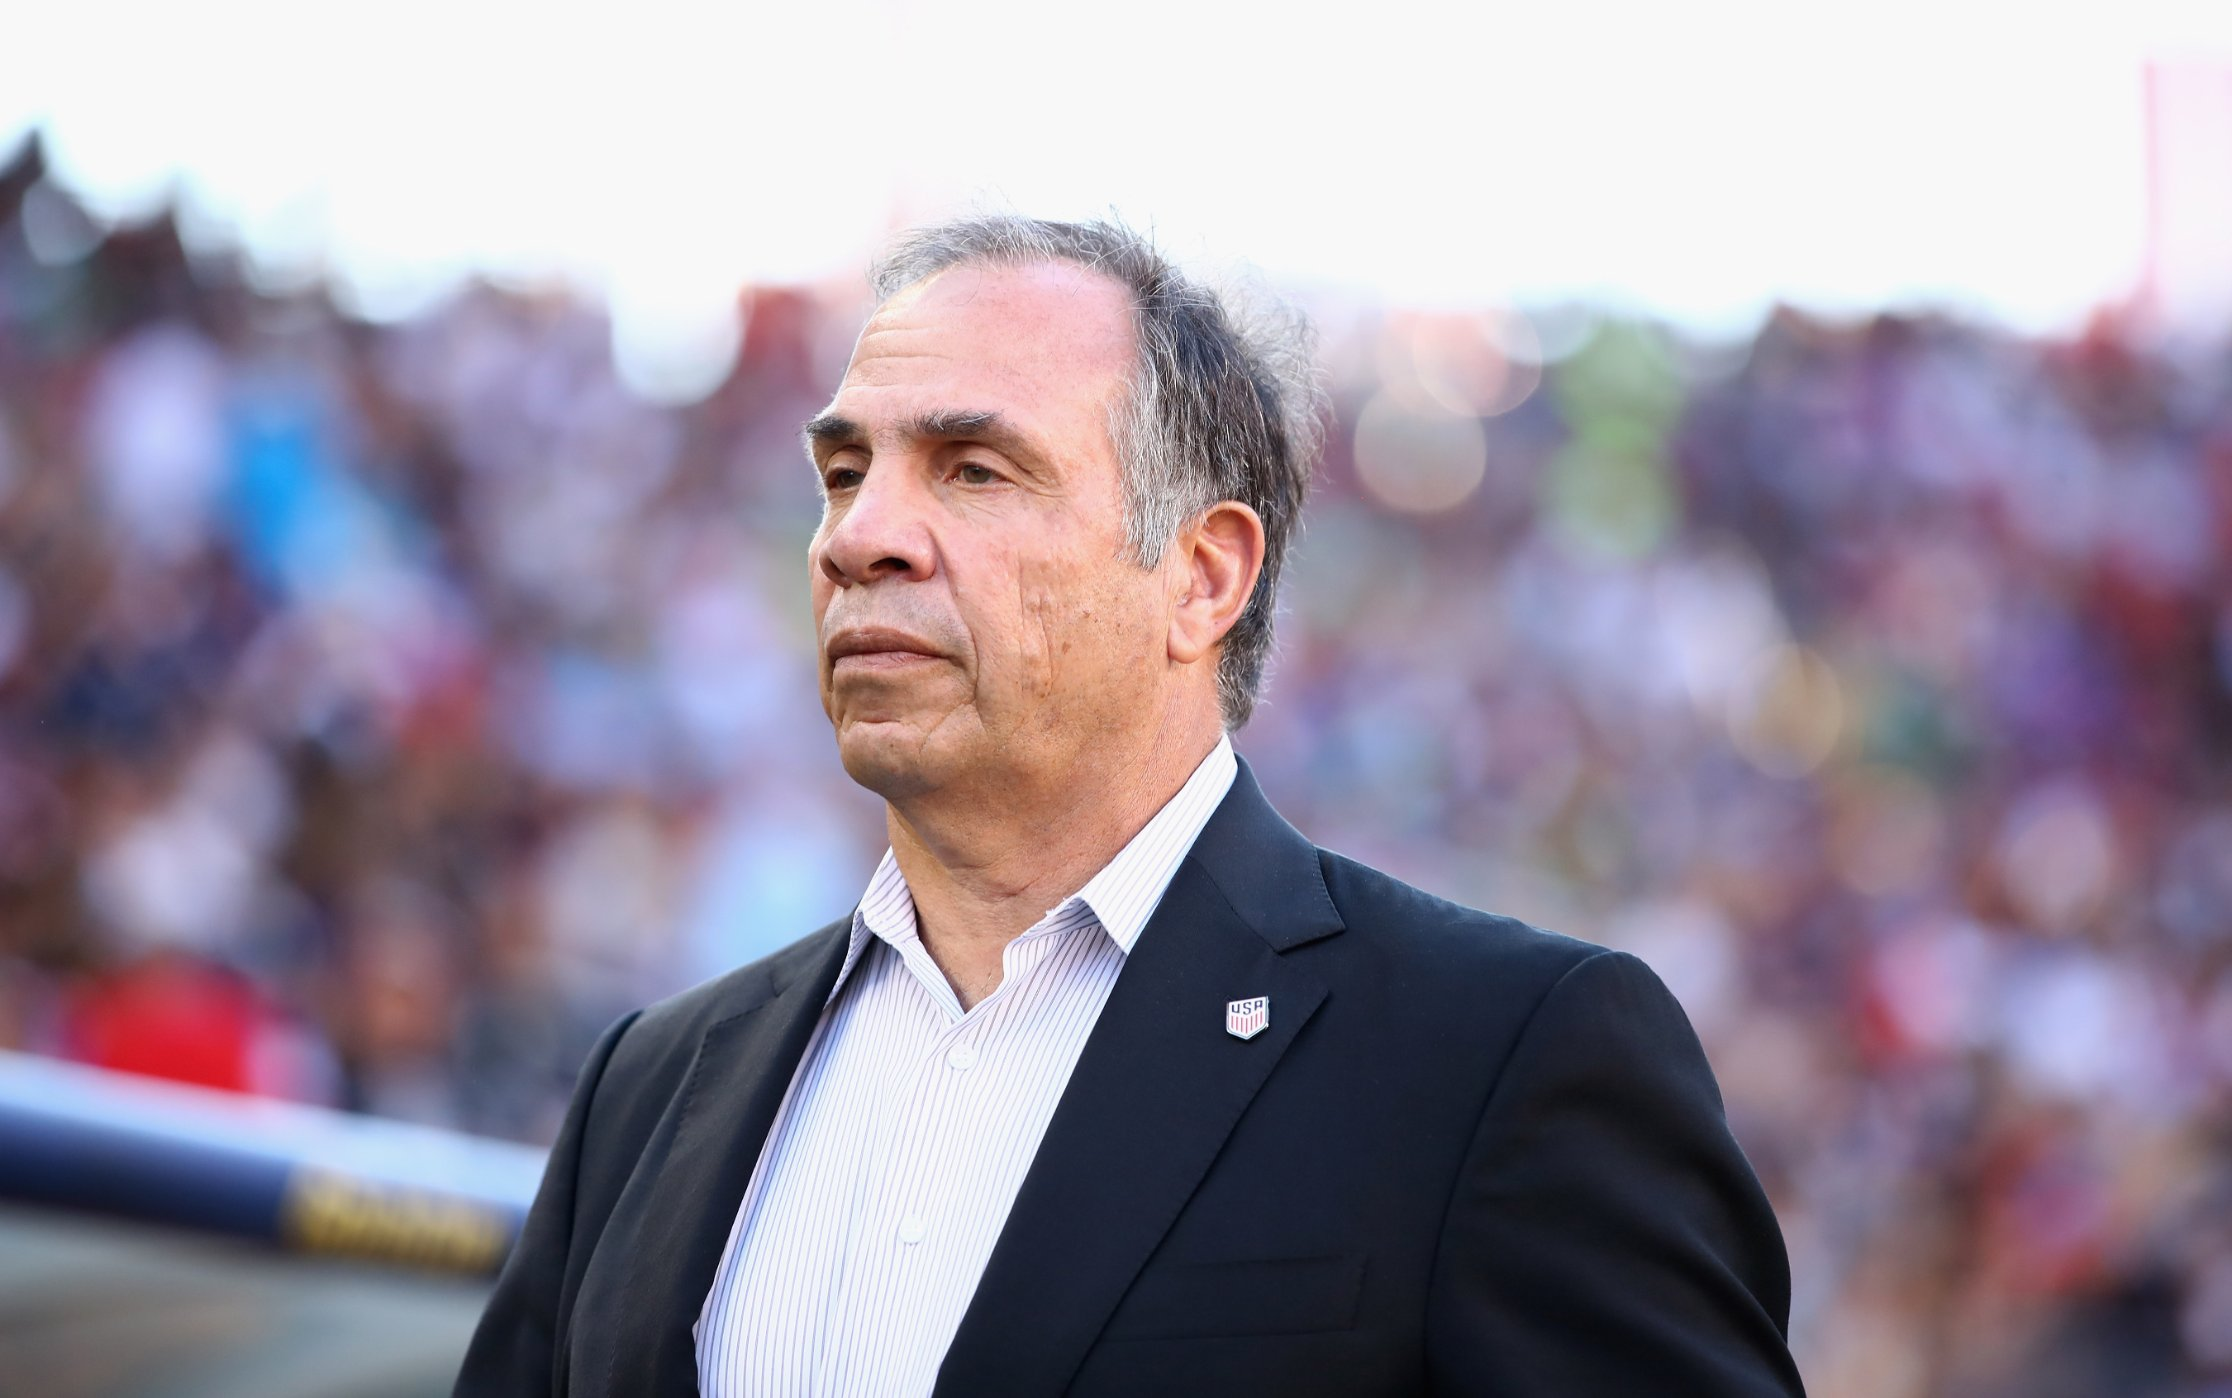 """Former US national men's soccer team coach Bruce Arena has questioned whether the """"The Star-Spangled Banner"""" -- the American national anthem -- should be played at professional sporting events in the States."""